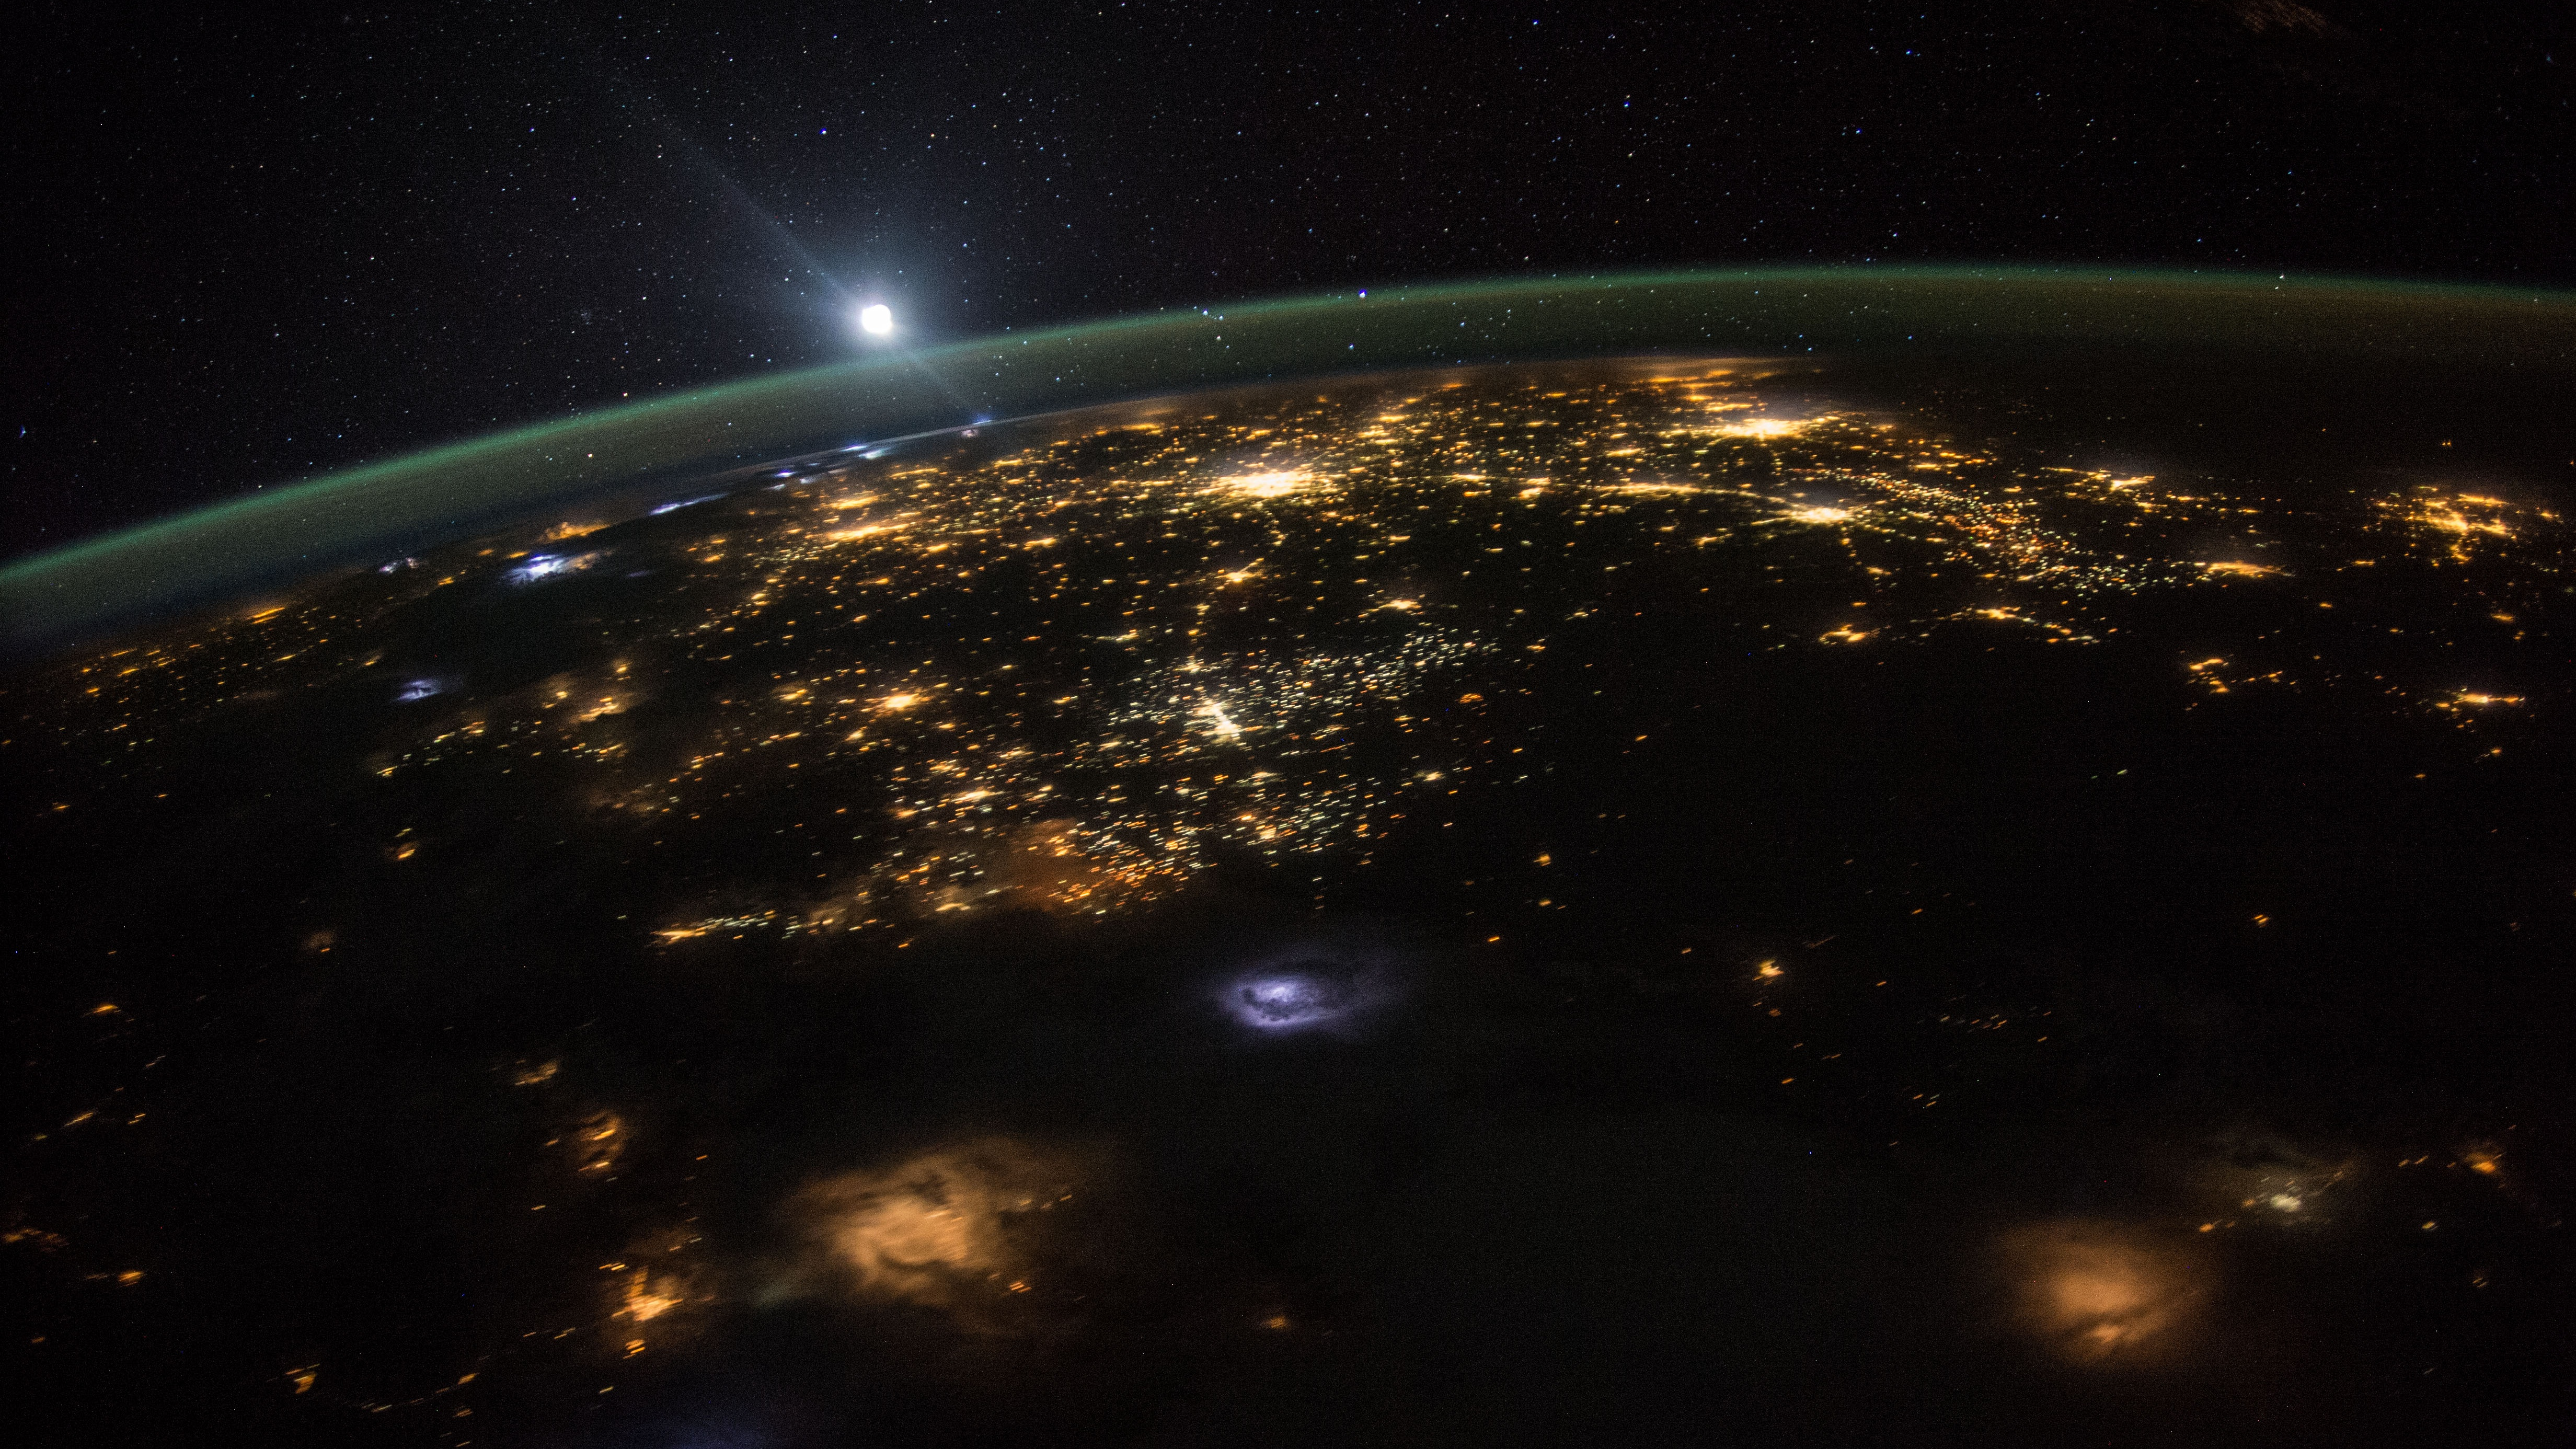 The view from the International Space Station